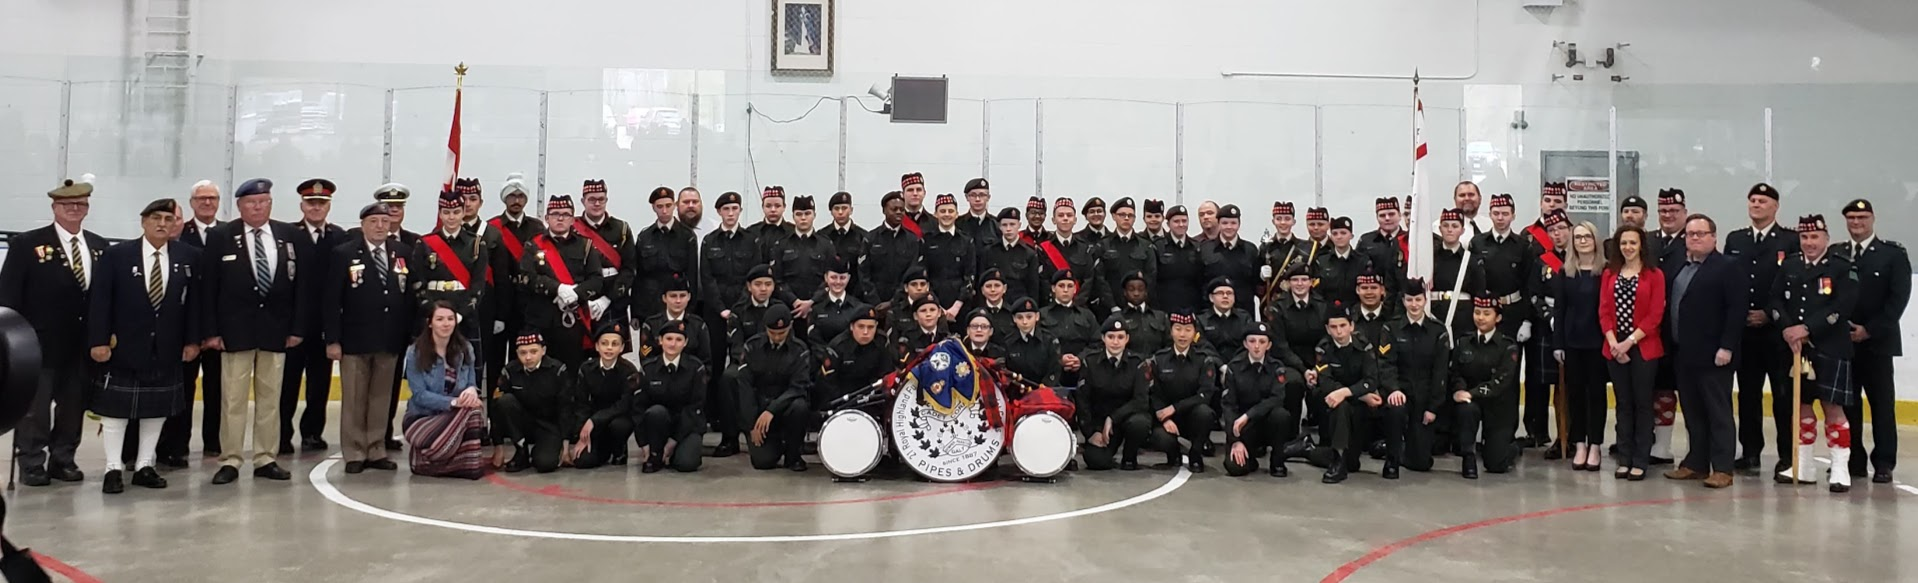 21 Royal Highland Fusiliers of Canada at  Annual Ceremonial Review - May 12th, 2019